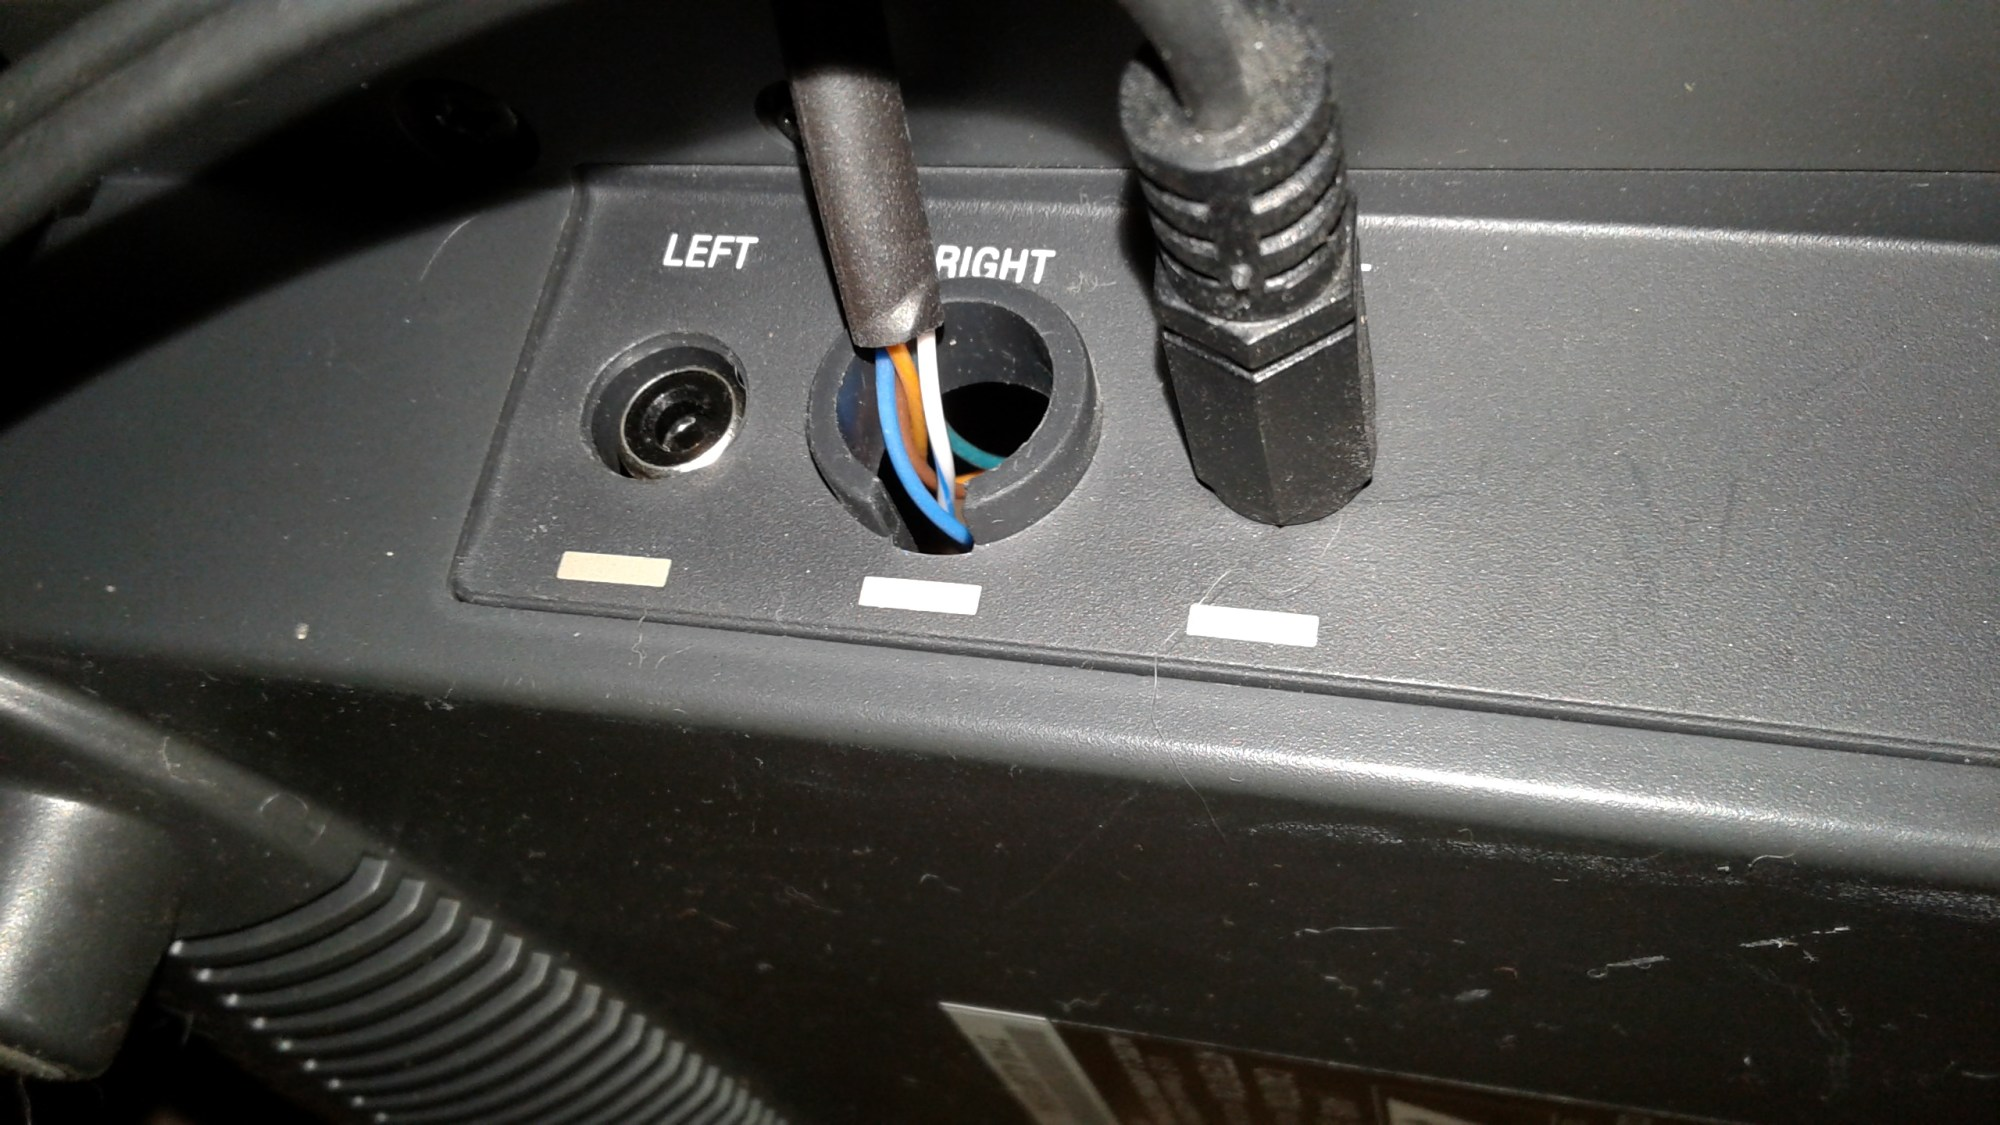 hight resolution of removing the din connector from the circuit board in the subwoofer created a convenient place to